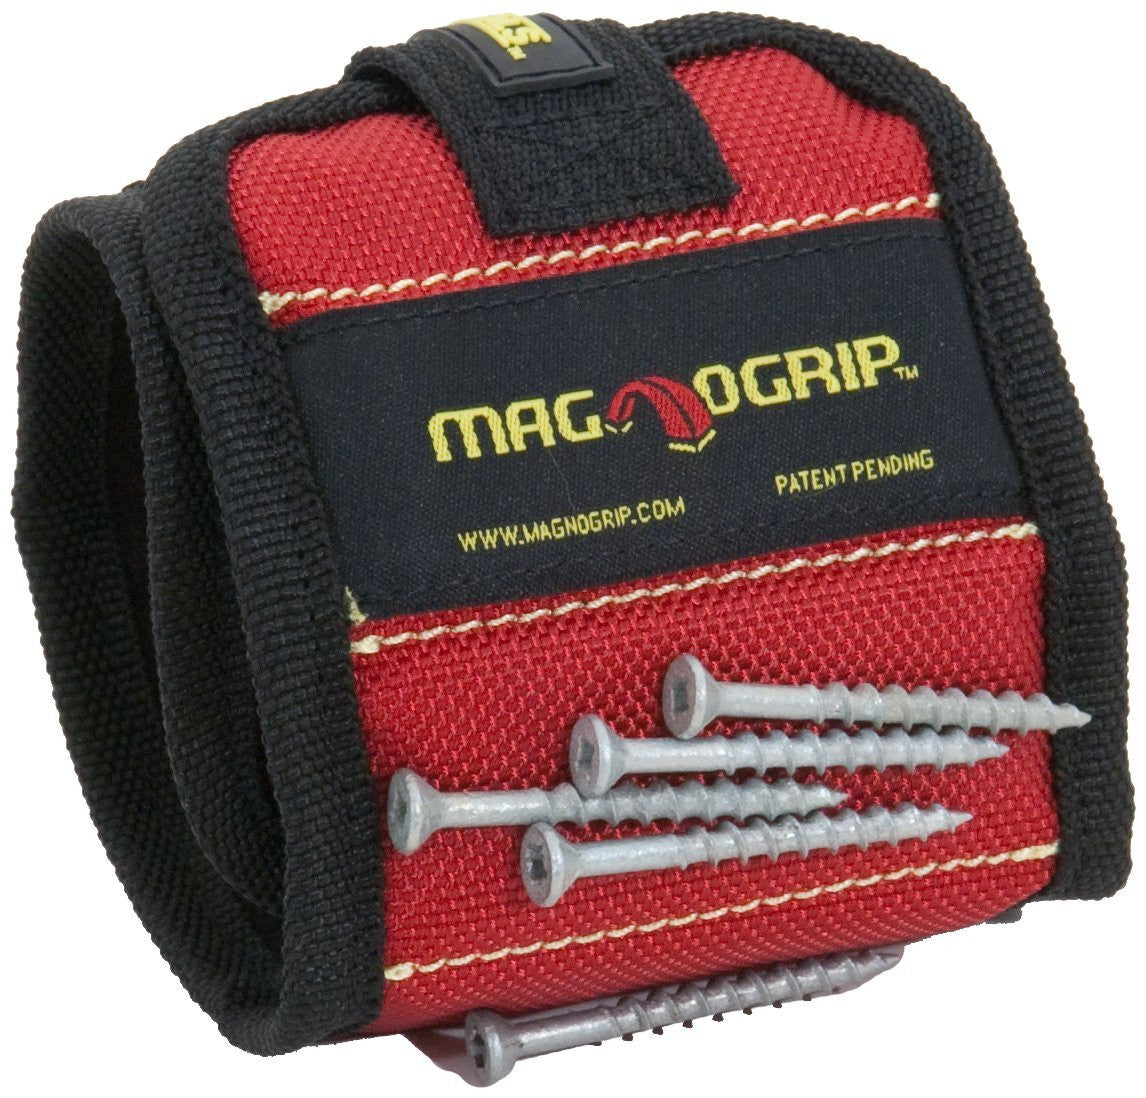 Magnetic Wristband - OddGifts.com